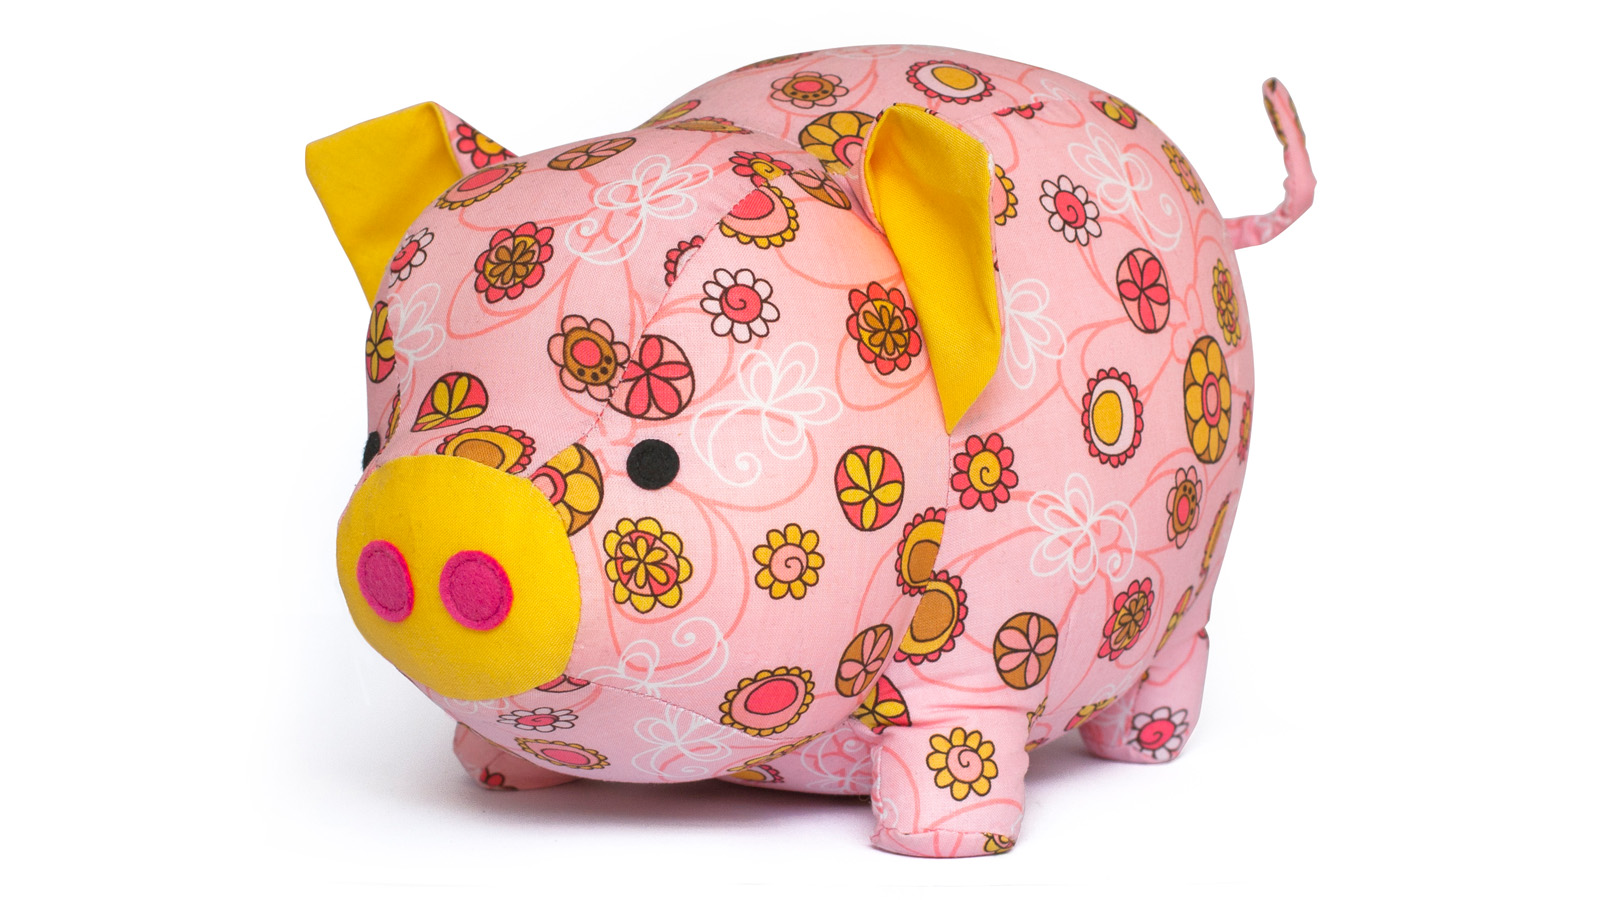 Cute Pig sewing toy pattern